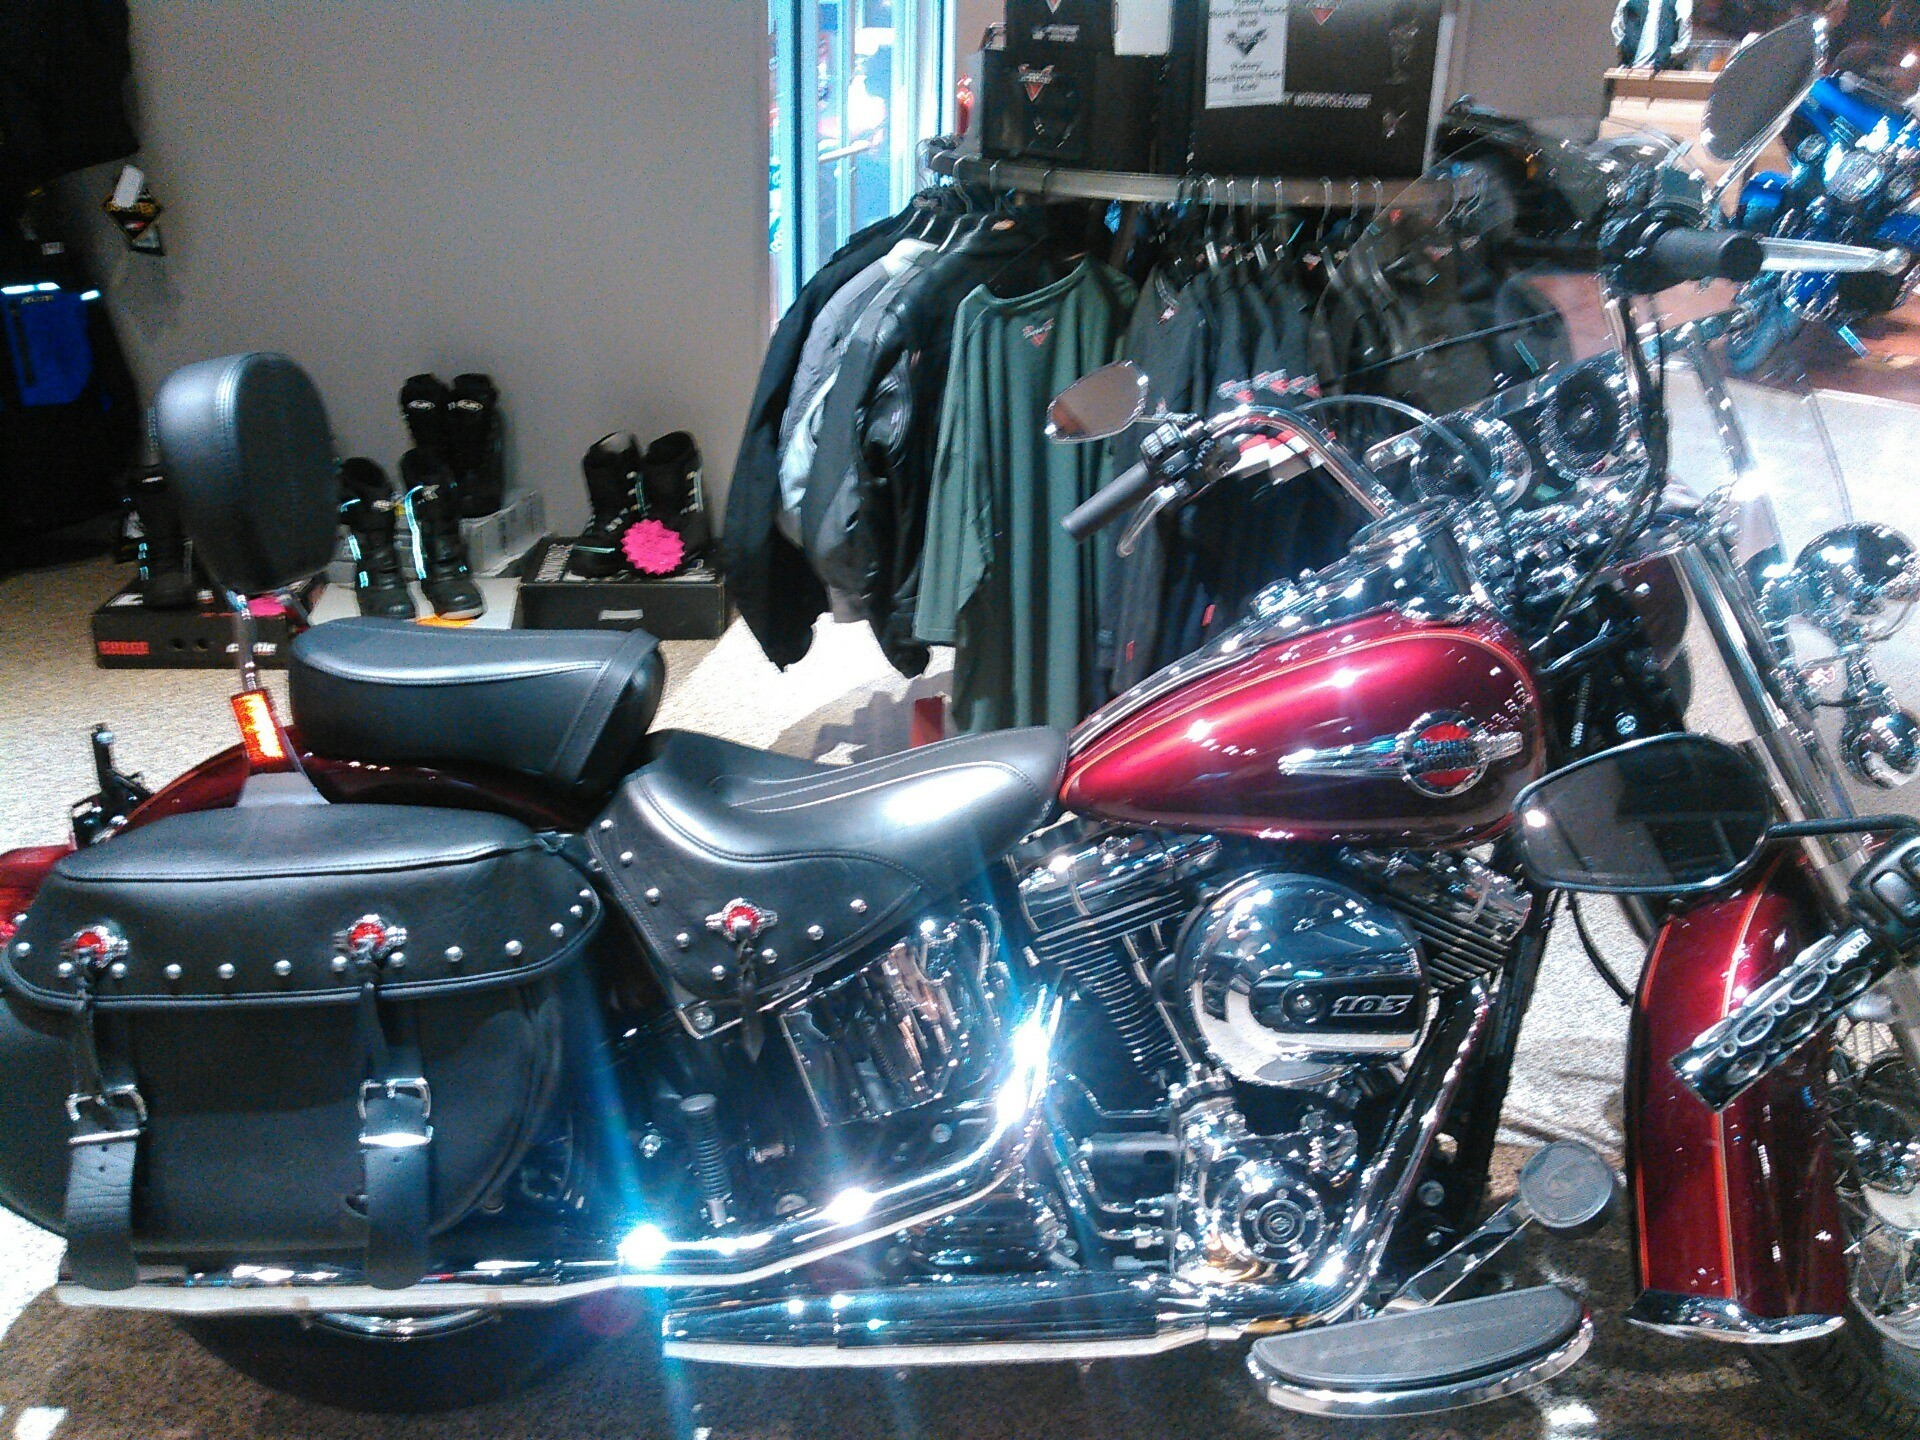 Used 2017 Harley Davidson Heritage Softail Classic Motorcycles In Dansville New York